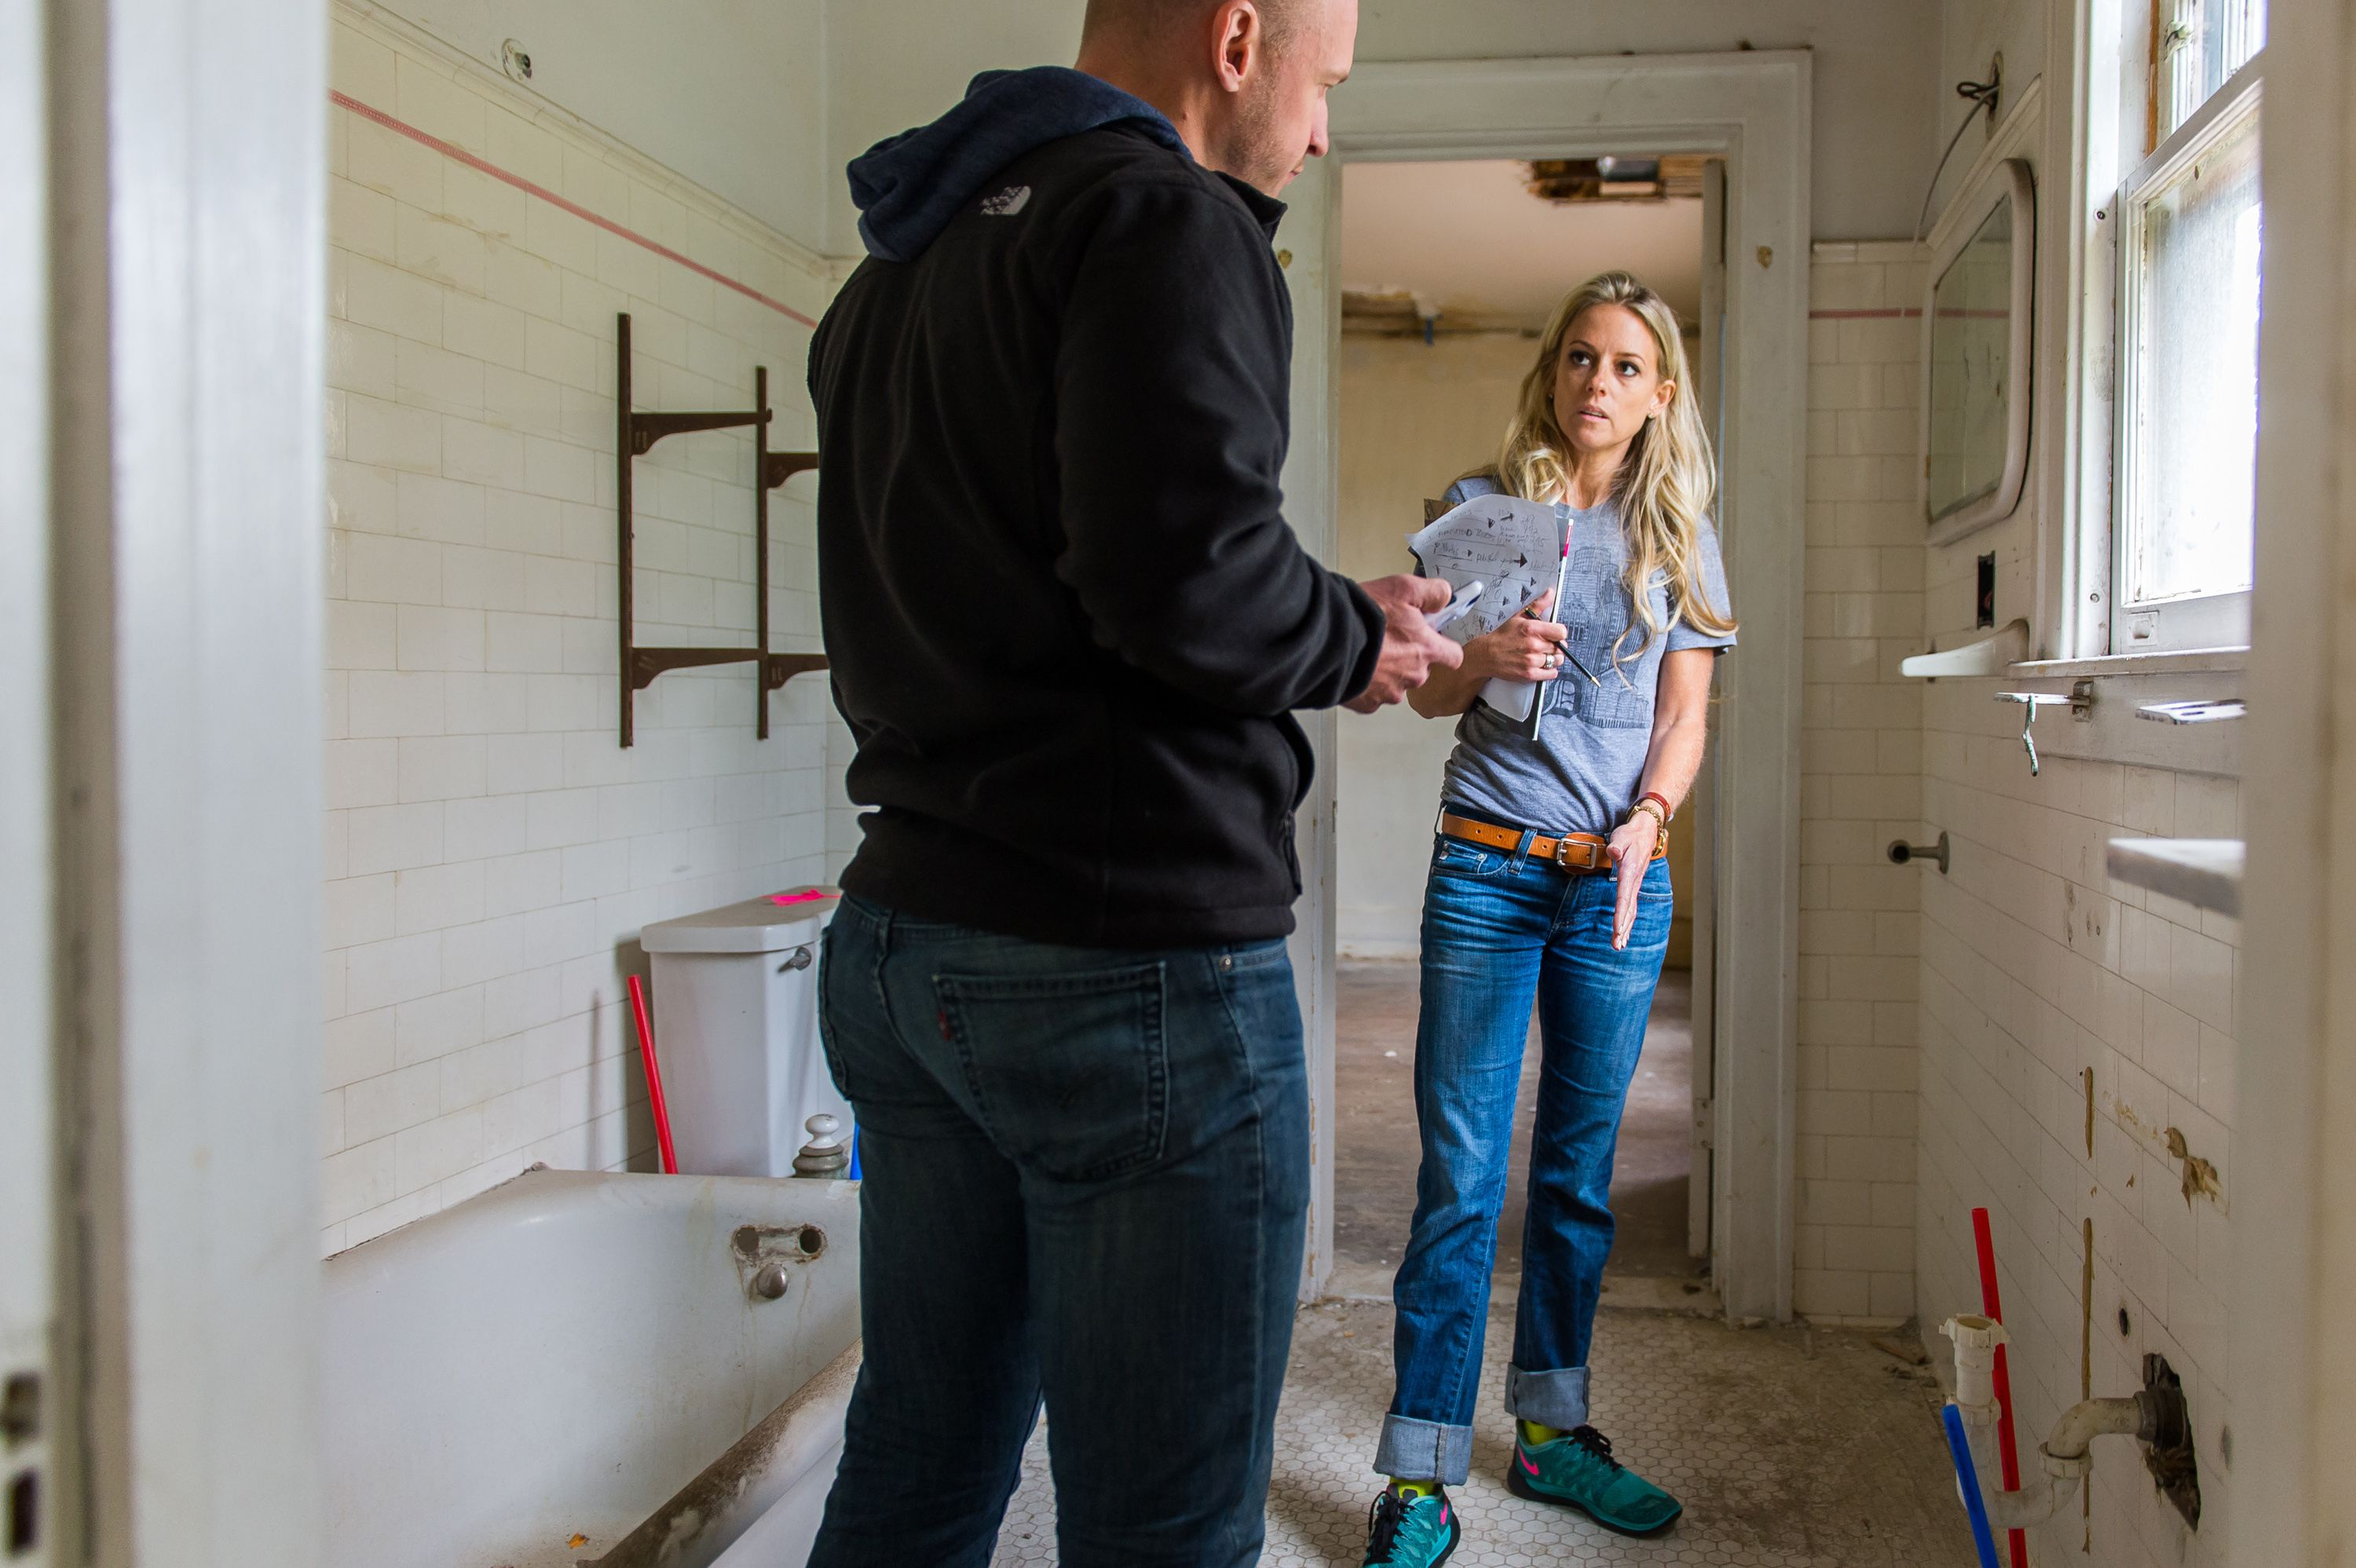 HGTV Star Nicole Curtis Opens Up About Painful Custody Battle